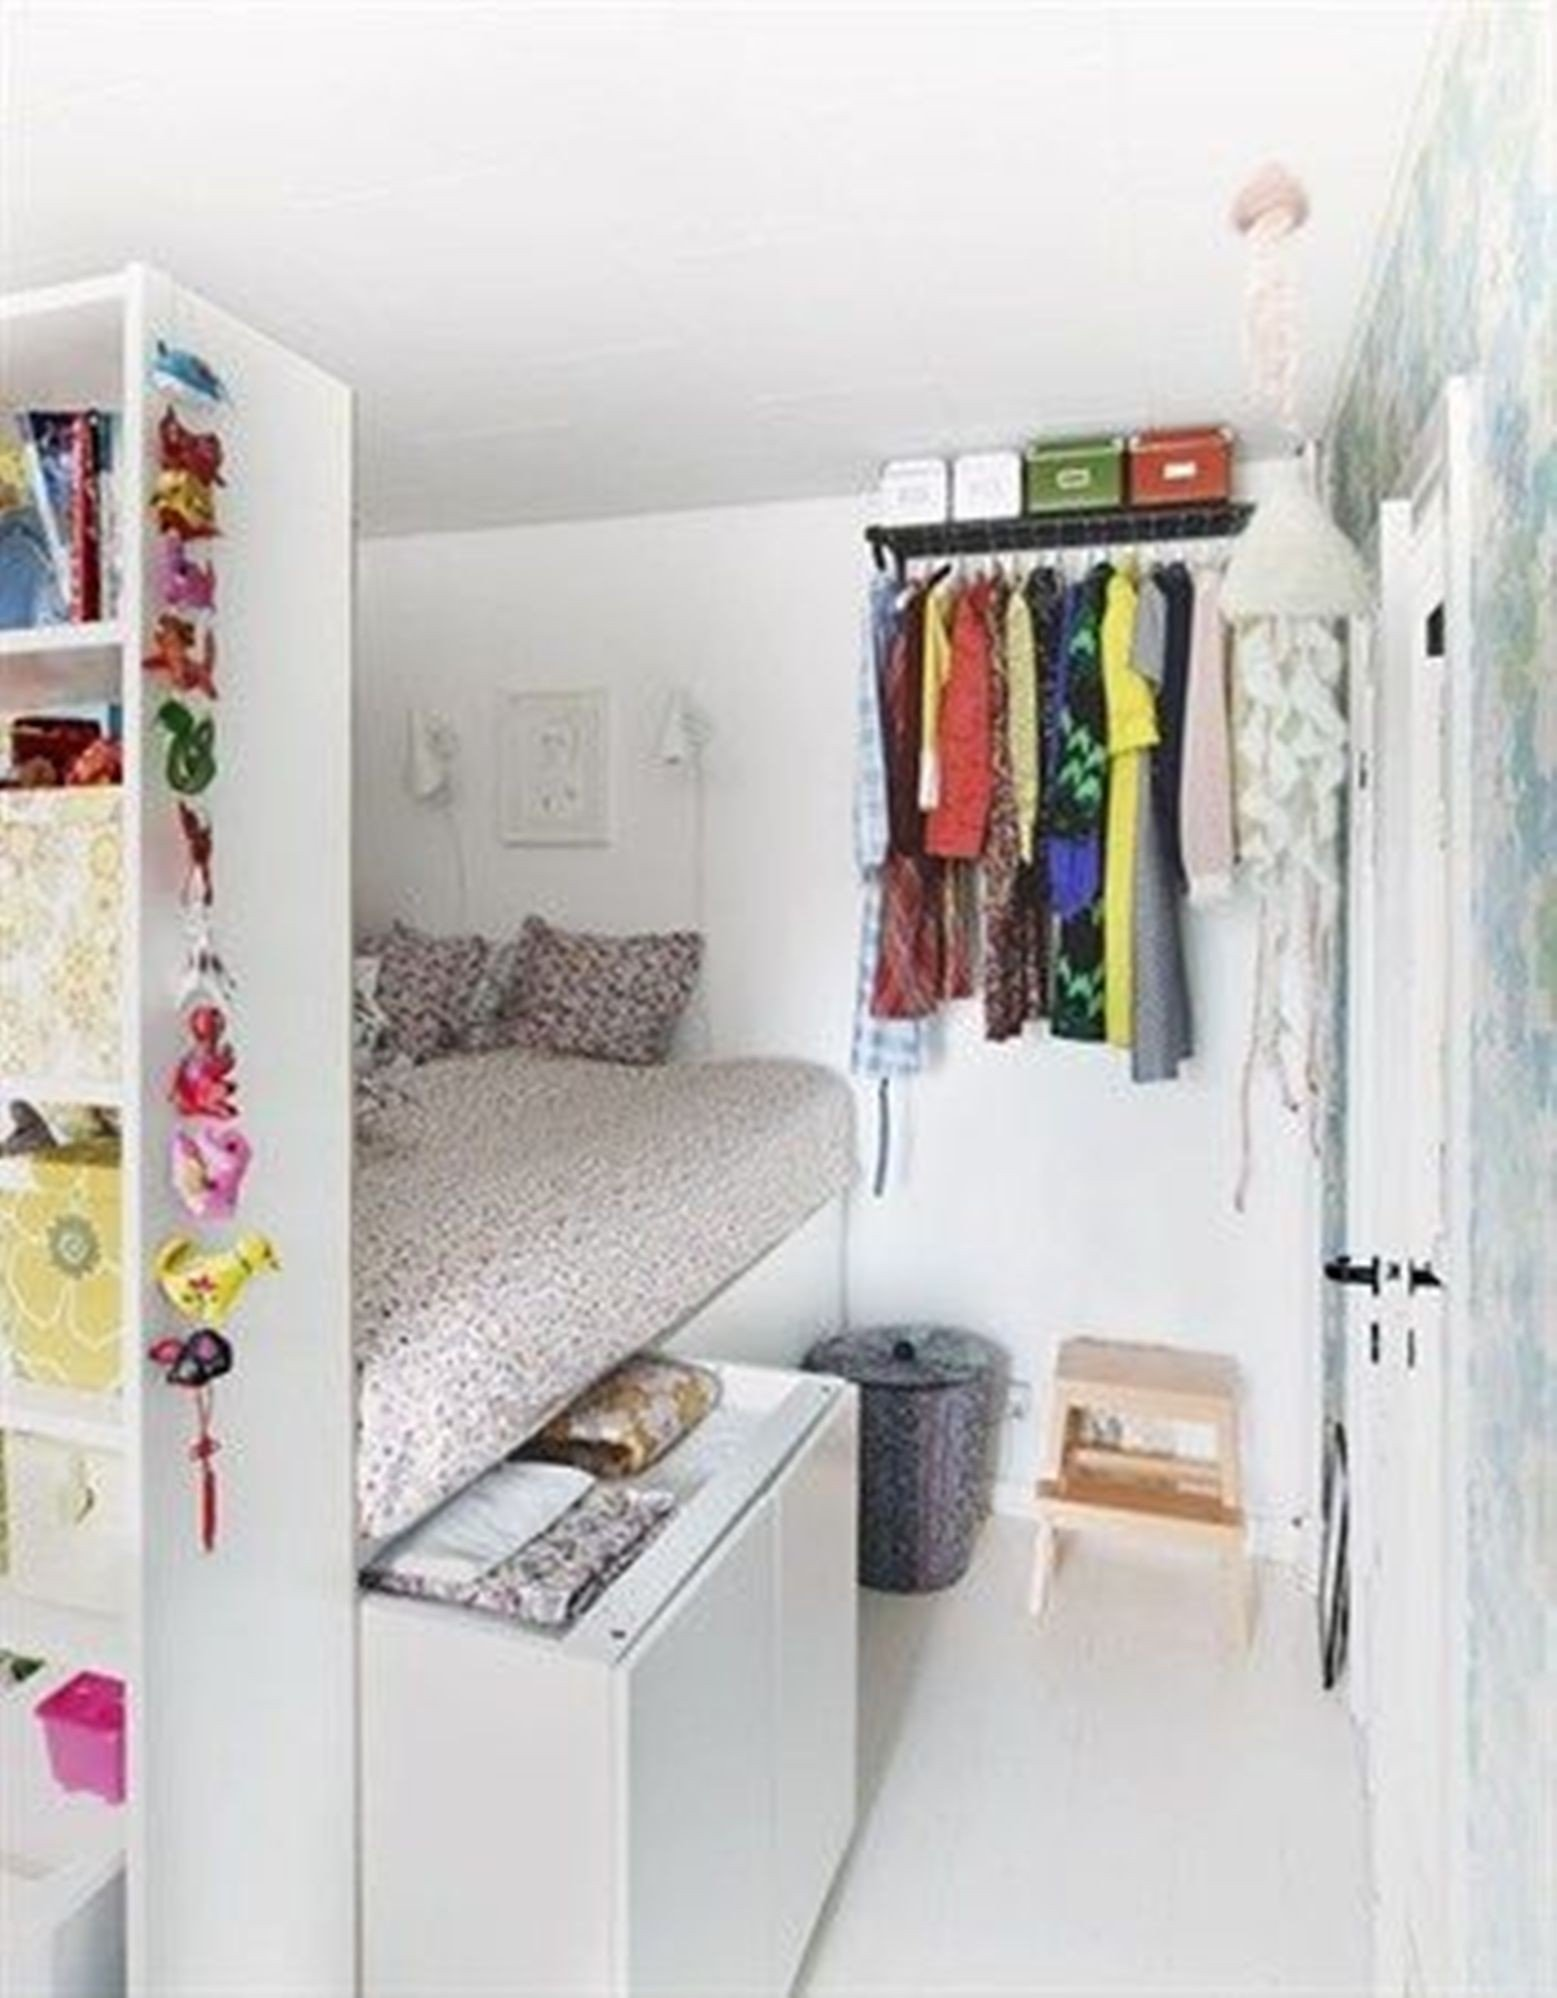 10 Nice Storage Ideas For Small Rooms storage for small apartment room storage ideas small apartment 2020